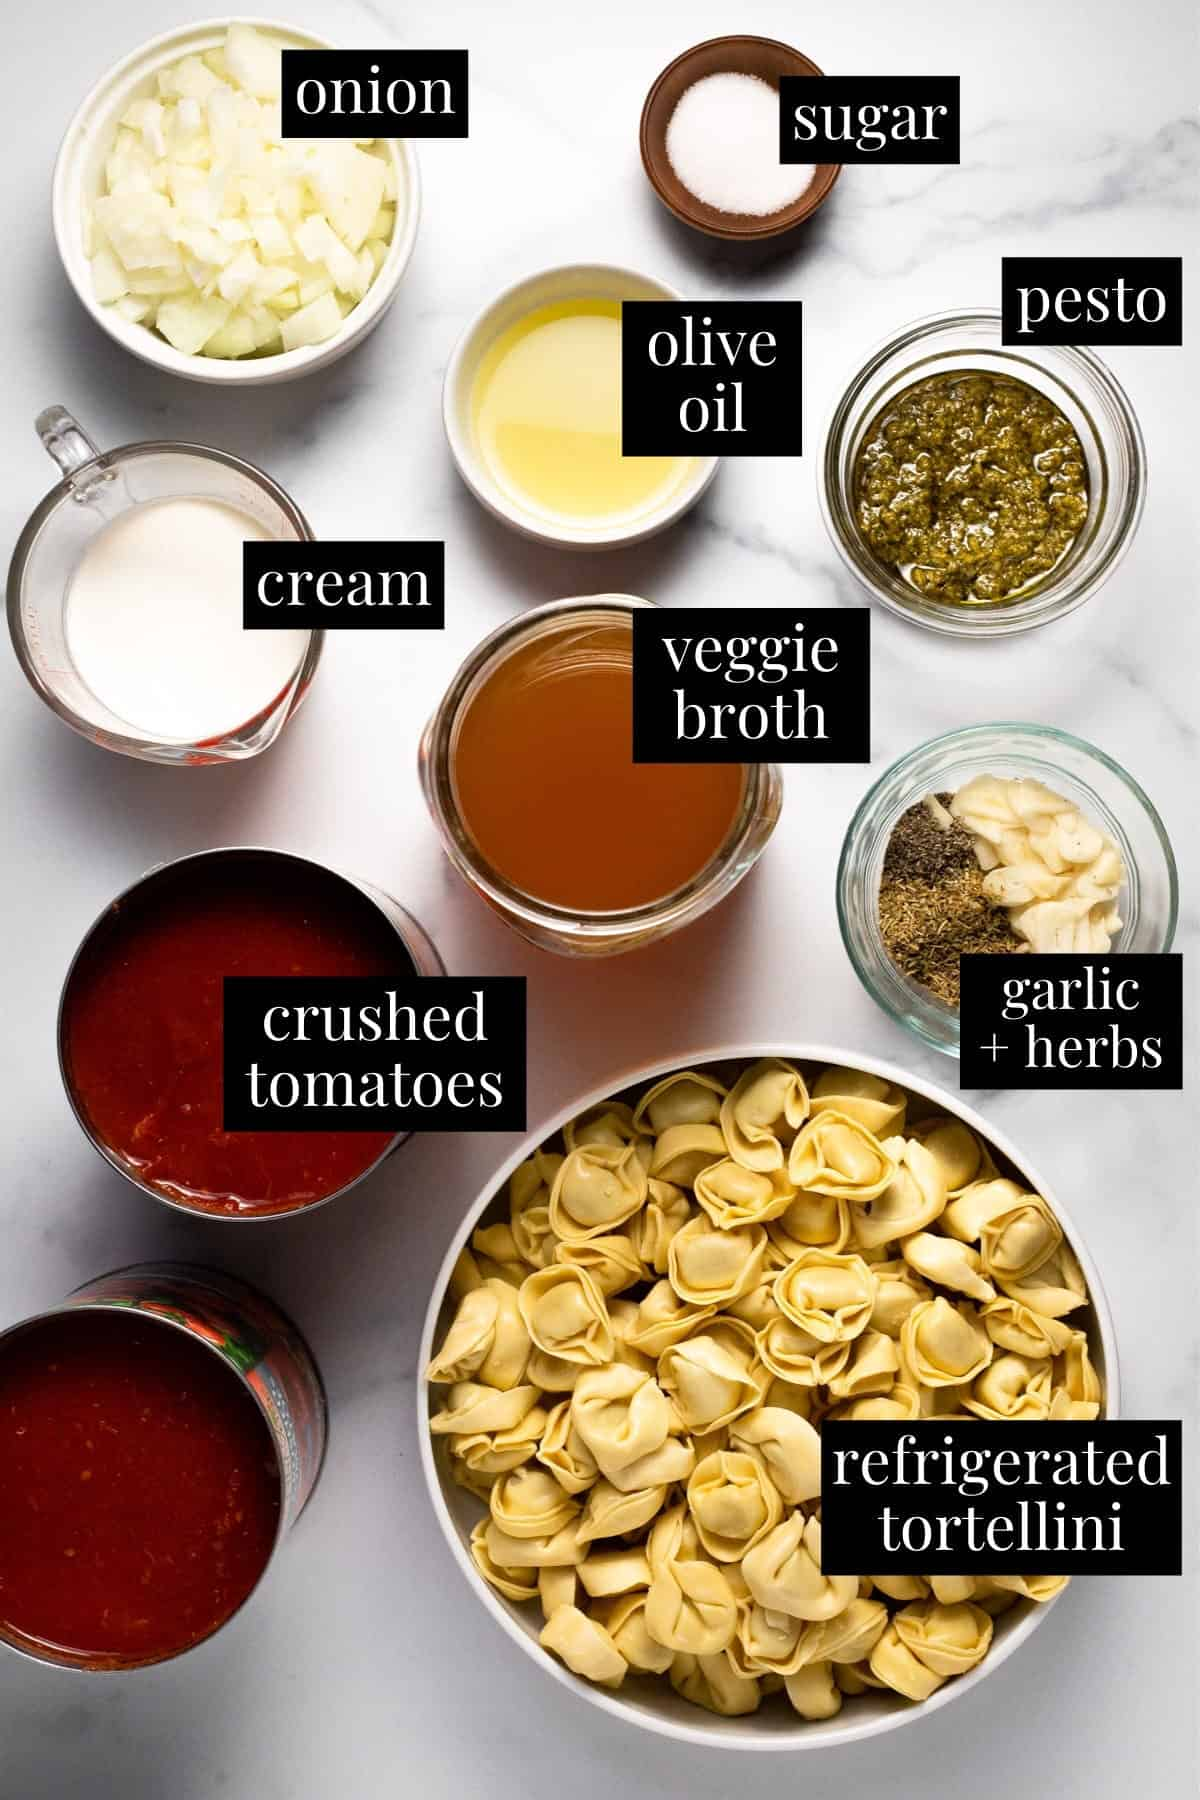 White marble counter top with ingredients to make tomato tortellini soup